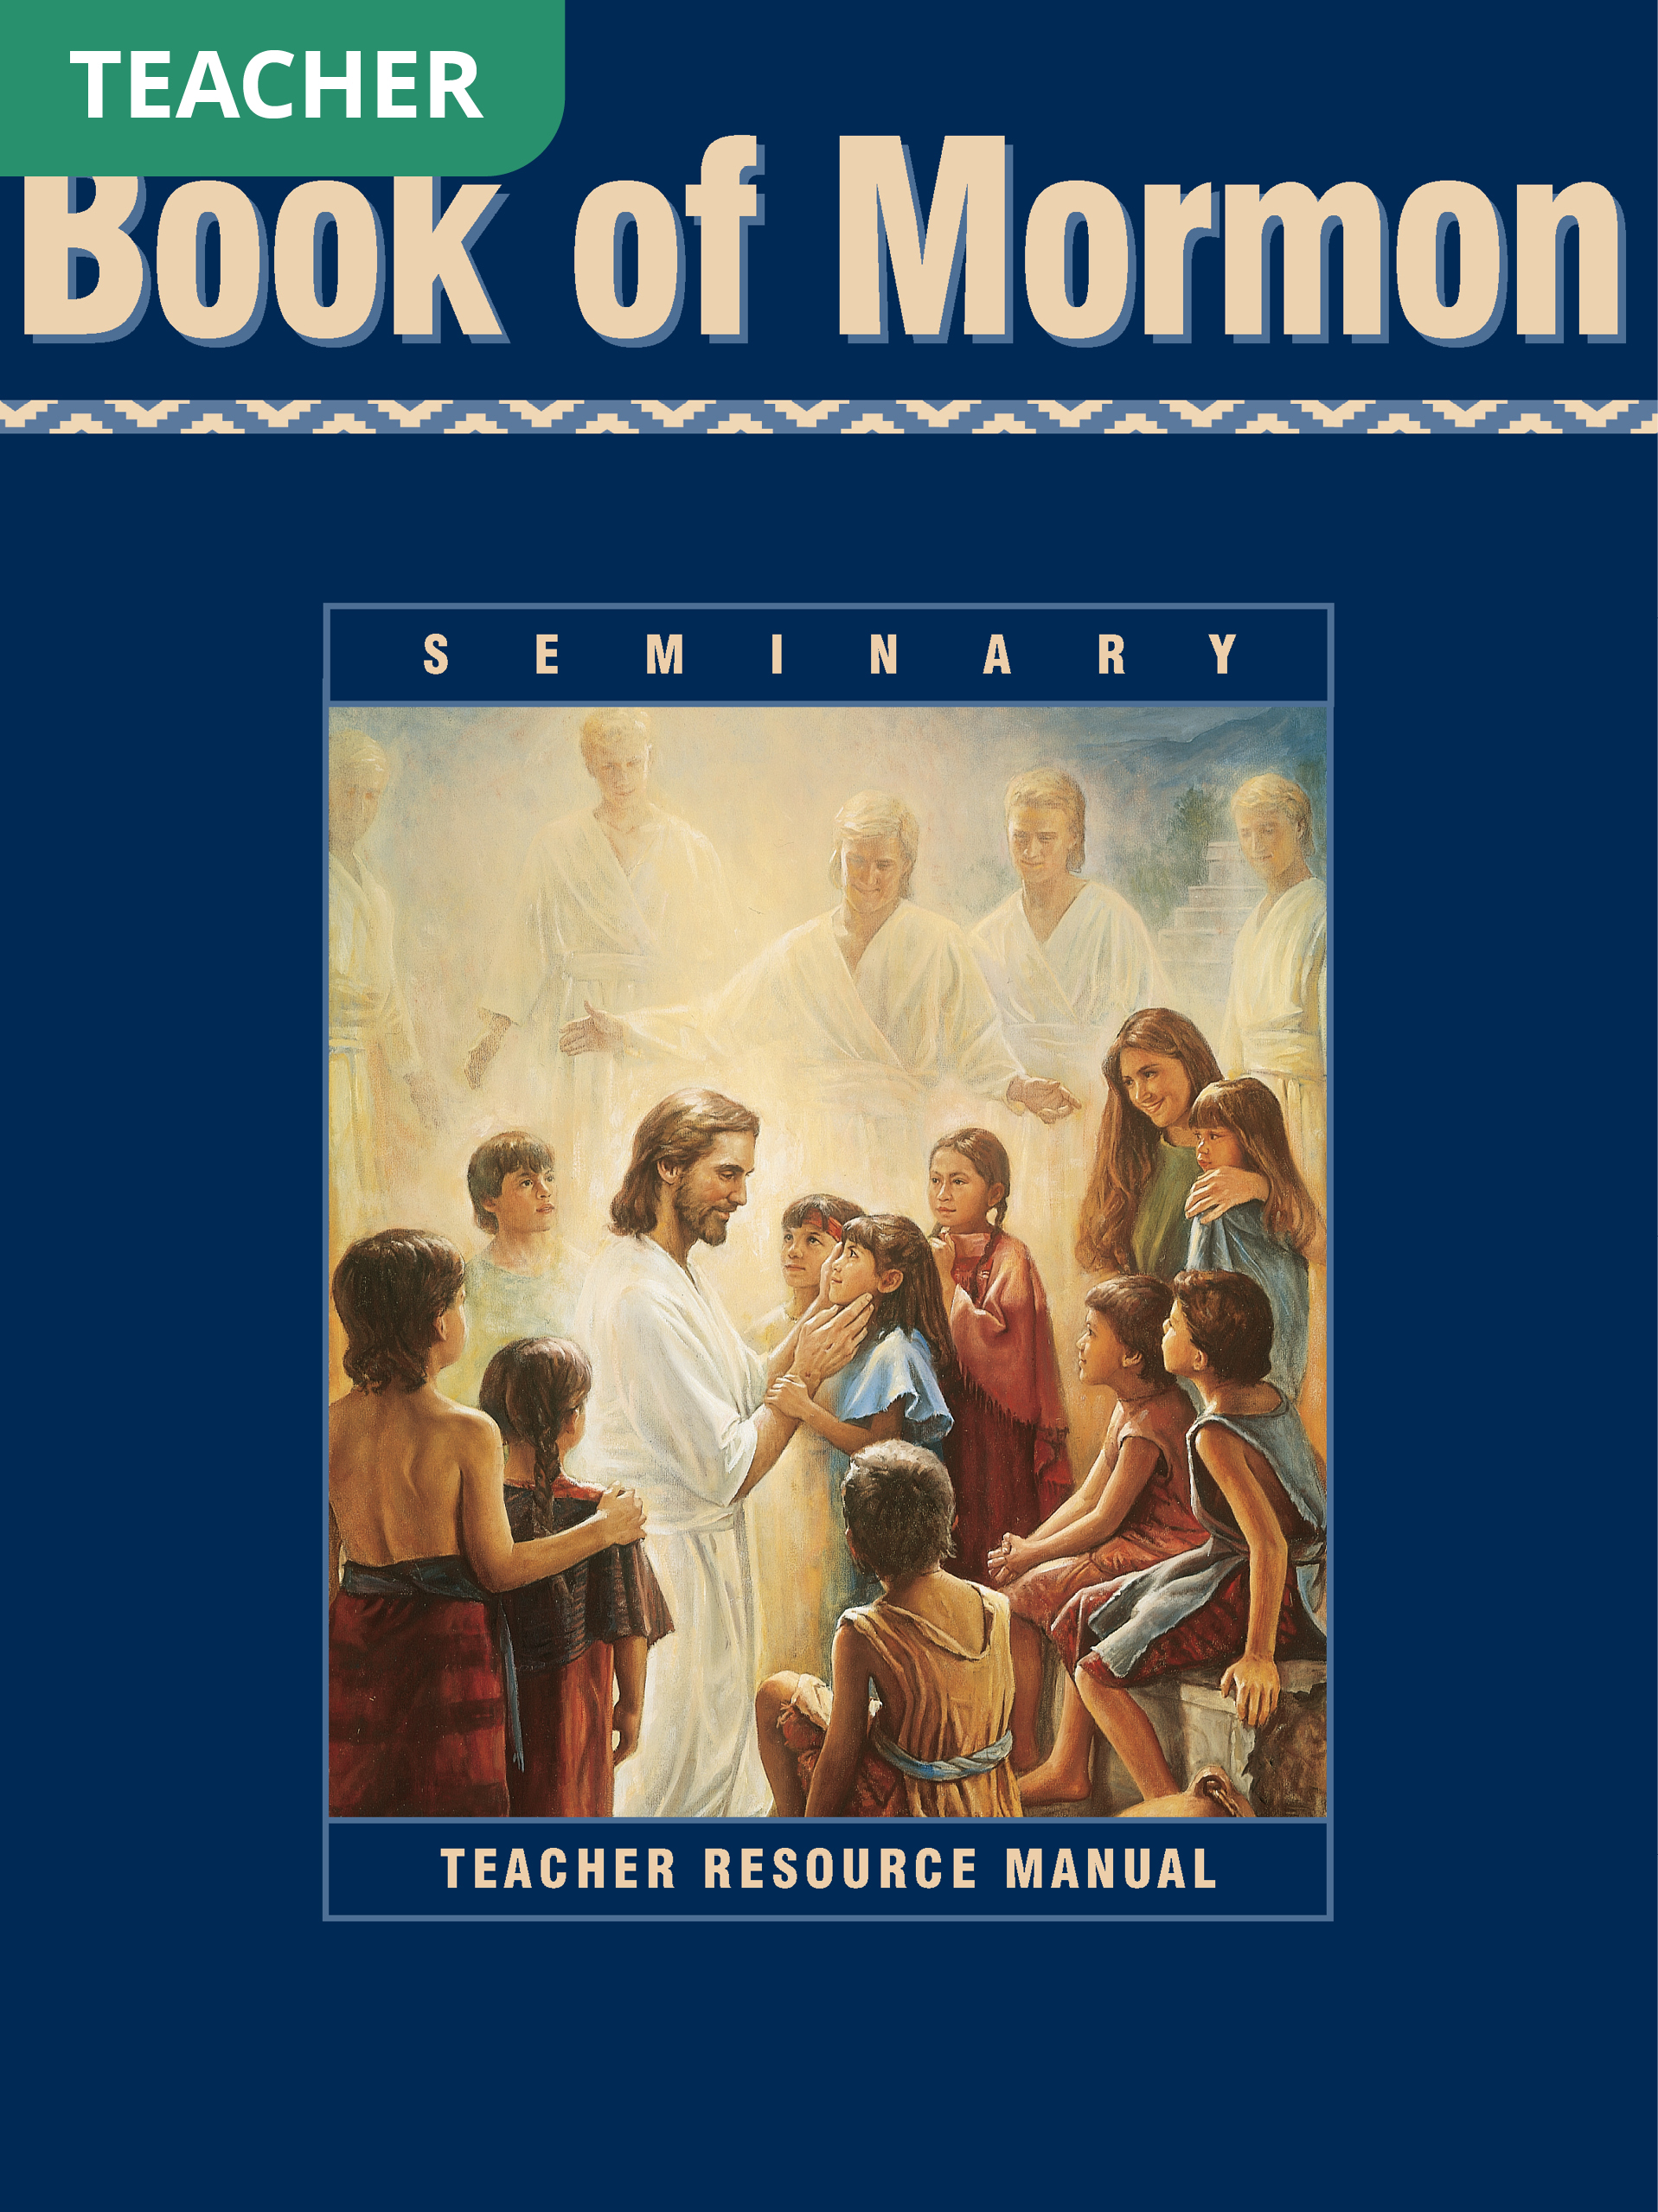 Book of Mormon Seminary Teacher Resource Manual